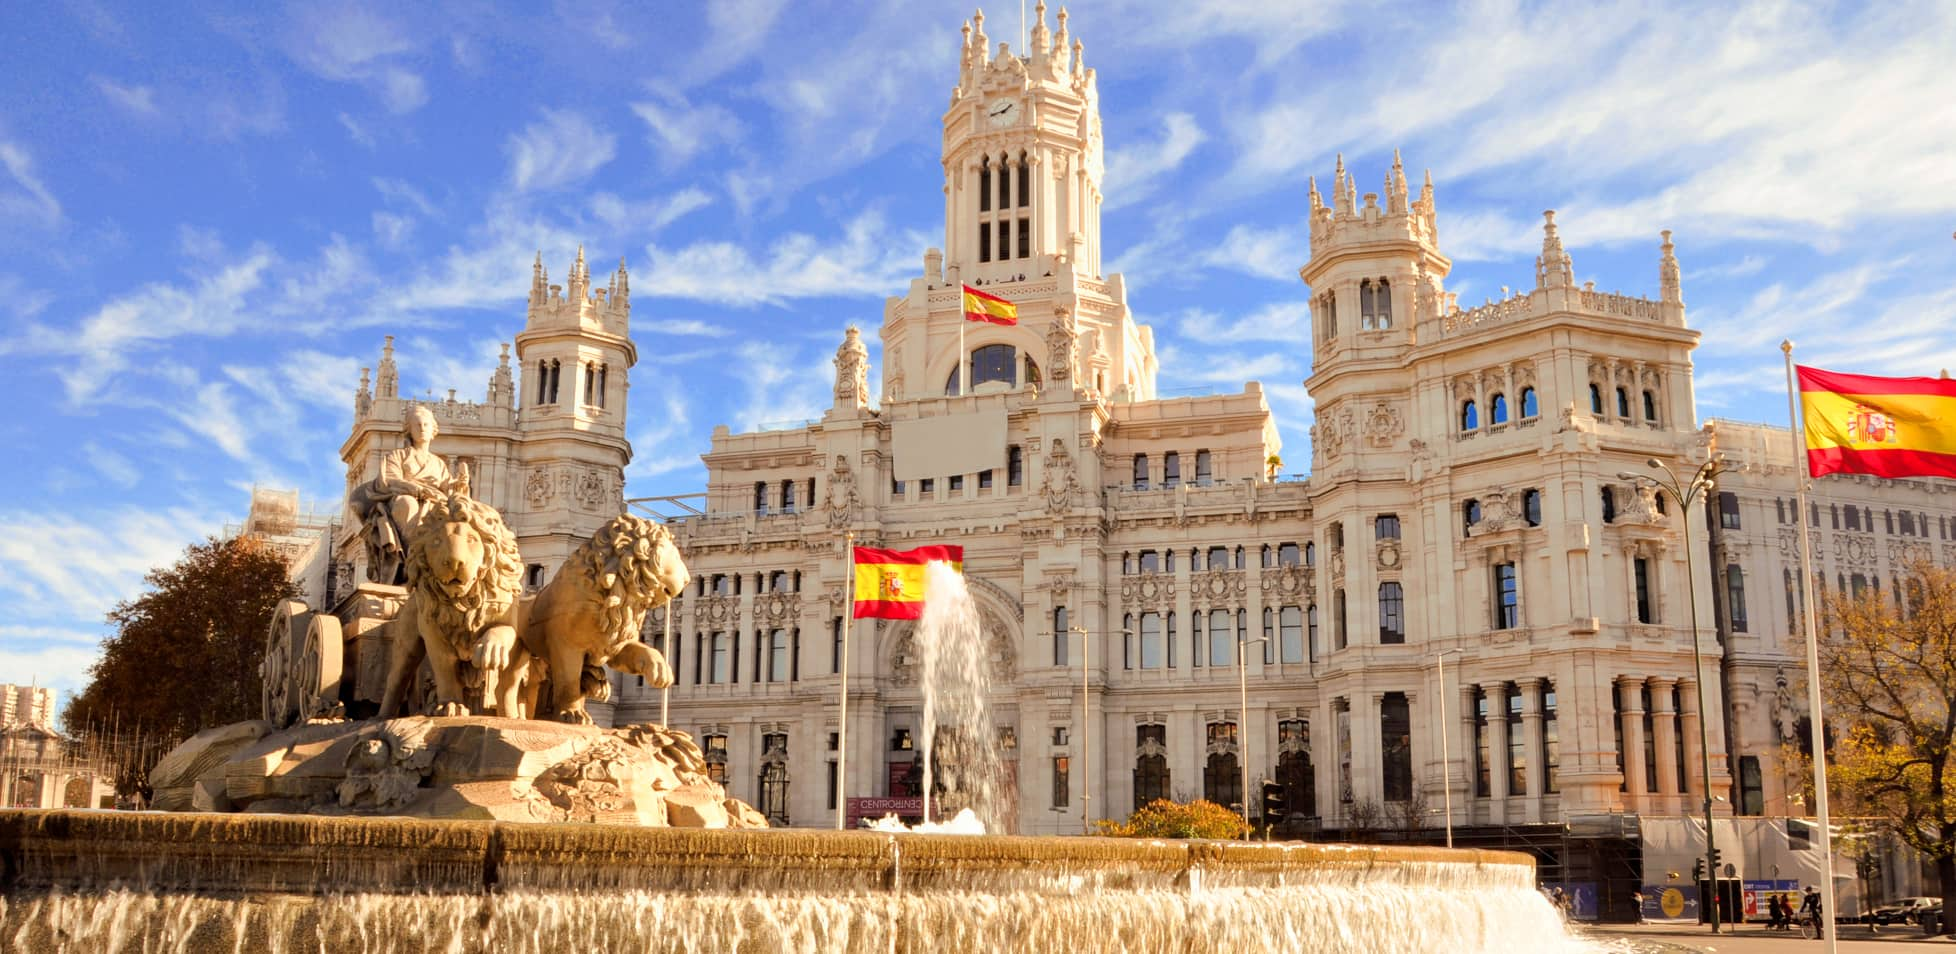 Miami to Madrid Spain $250 RT Airfares on TAP Air Portugal Discount Economy (Travel November - March 2022)